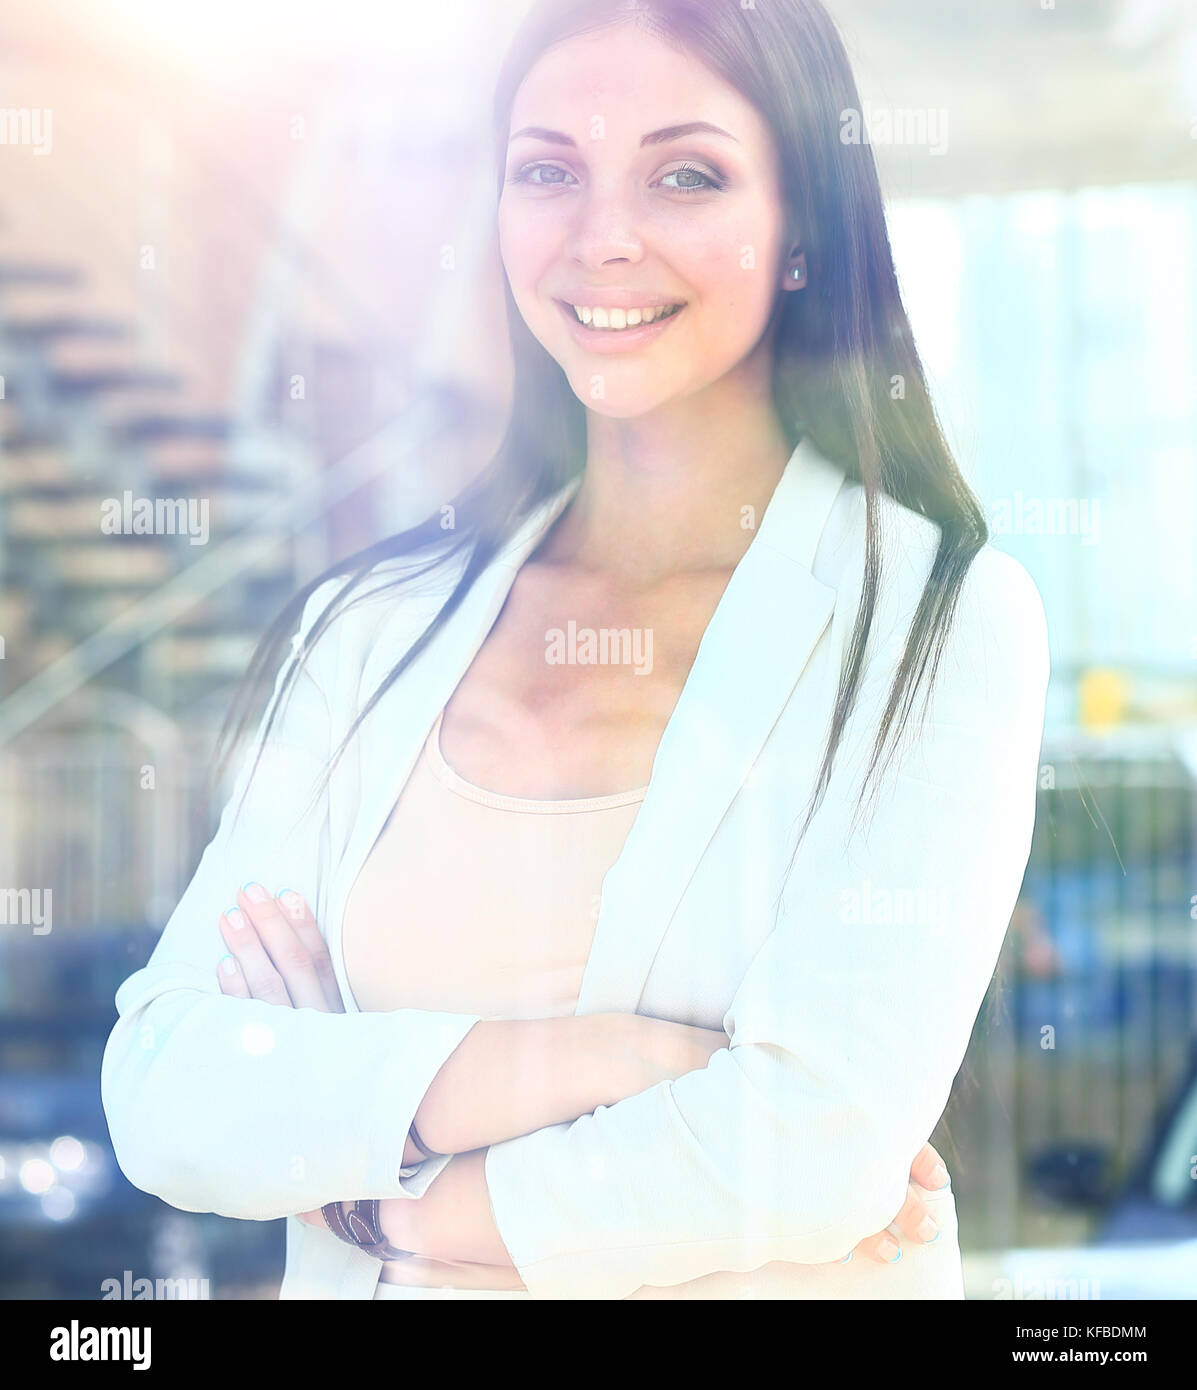 business woman looking thtough window in the office - Stock Image